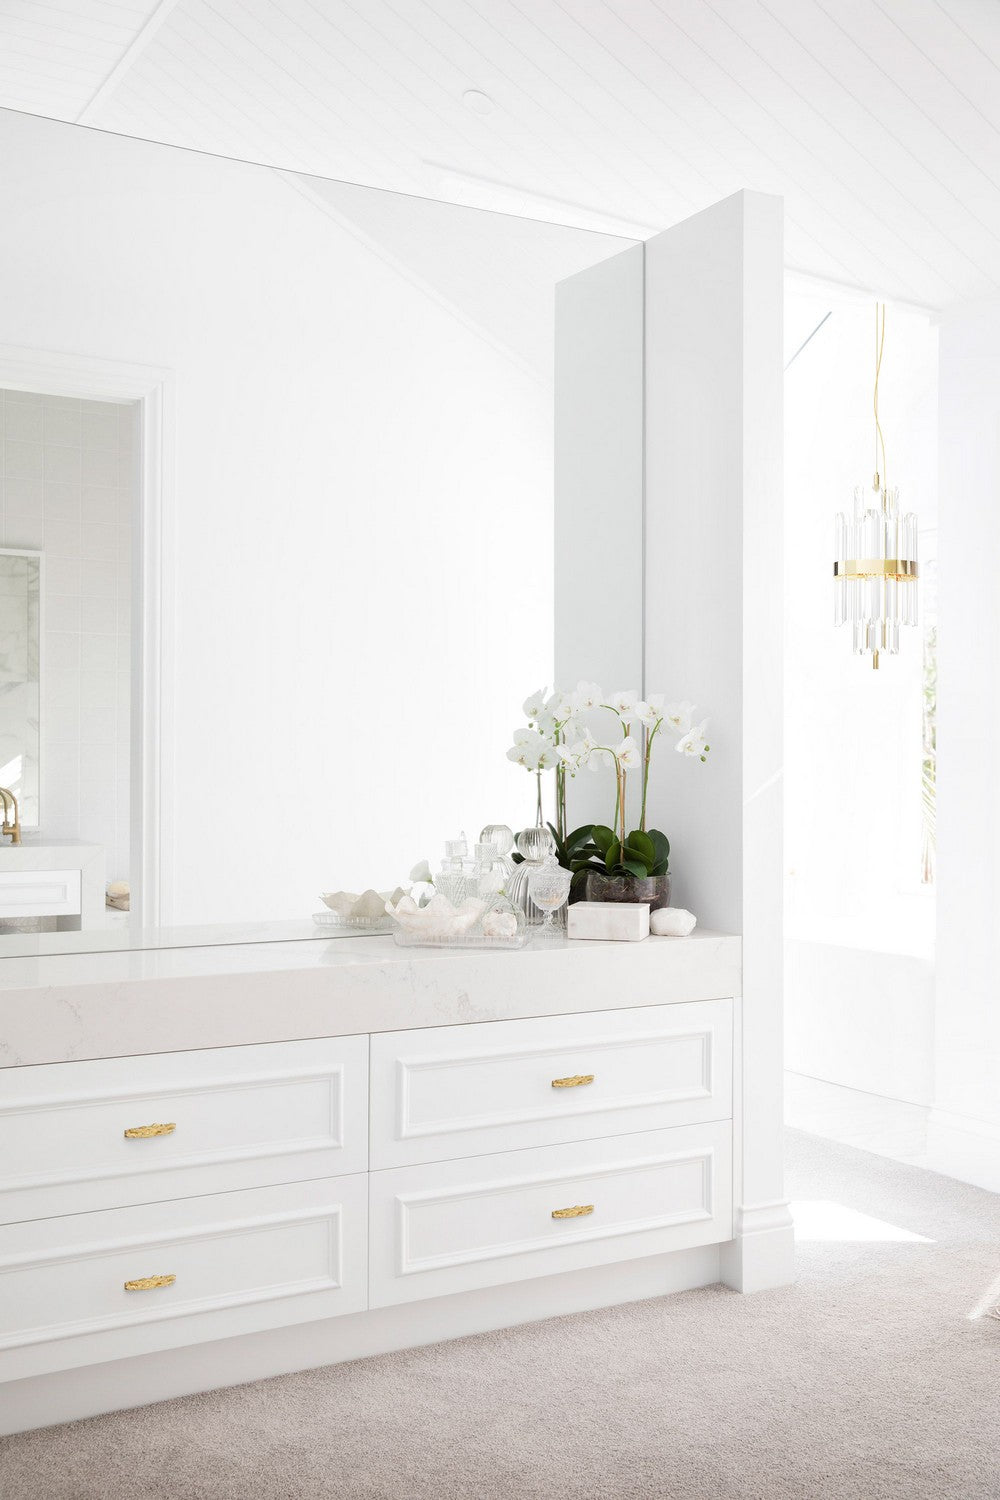 BATHROOM DESIGN IDEAS: ENHANCE YOUR SPACE WITH JEWELRY HARDWARE